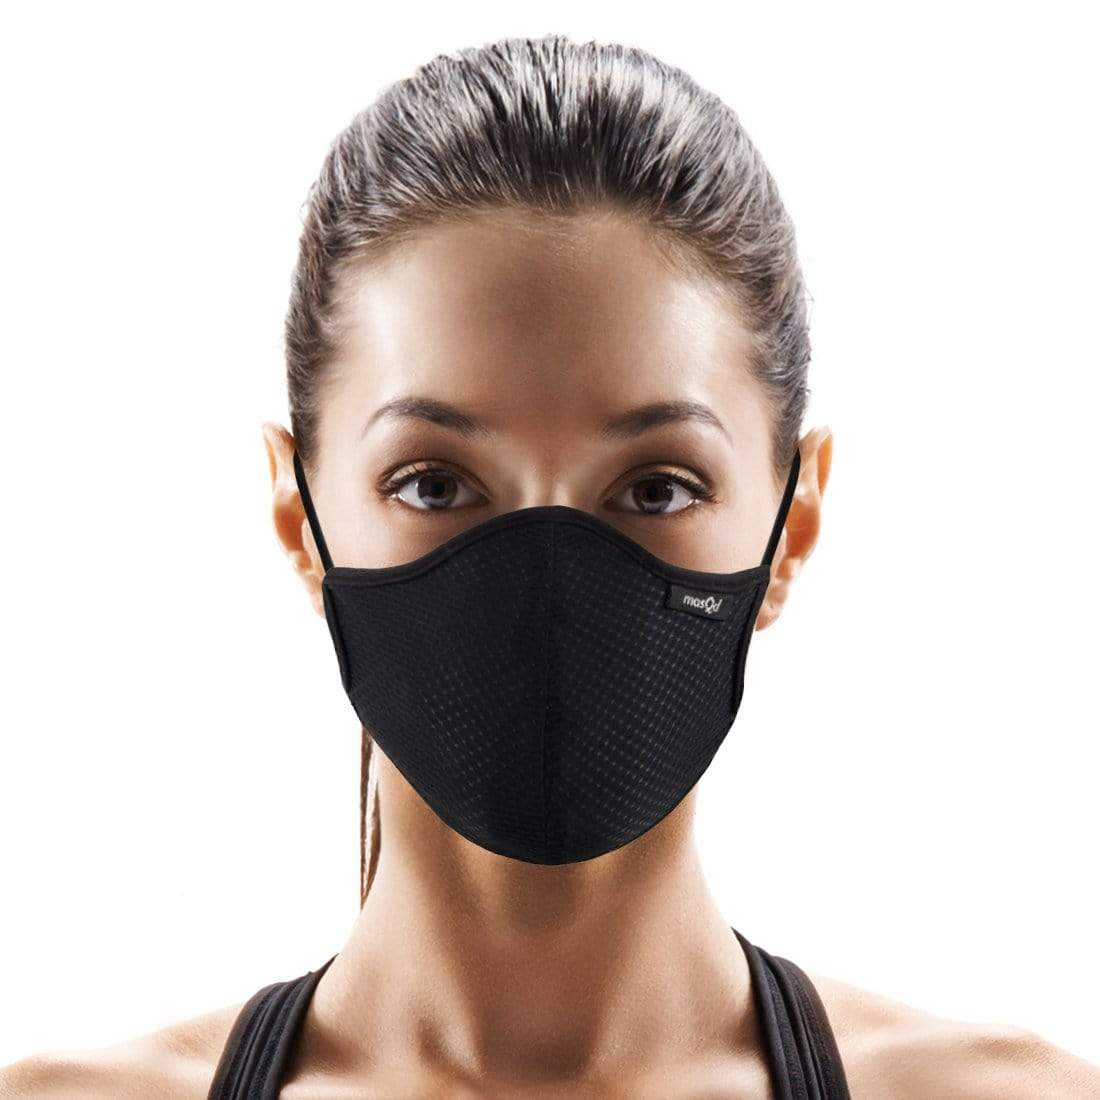 masQd Ultra Sport Face Mask - best mask with filters